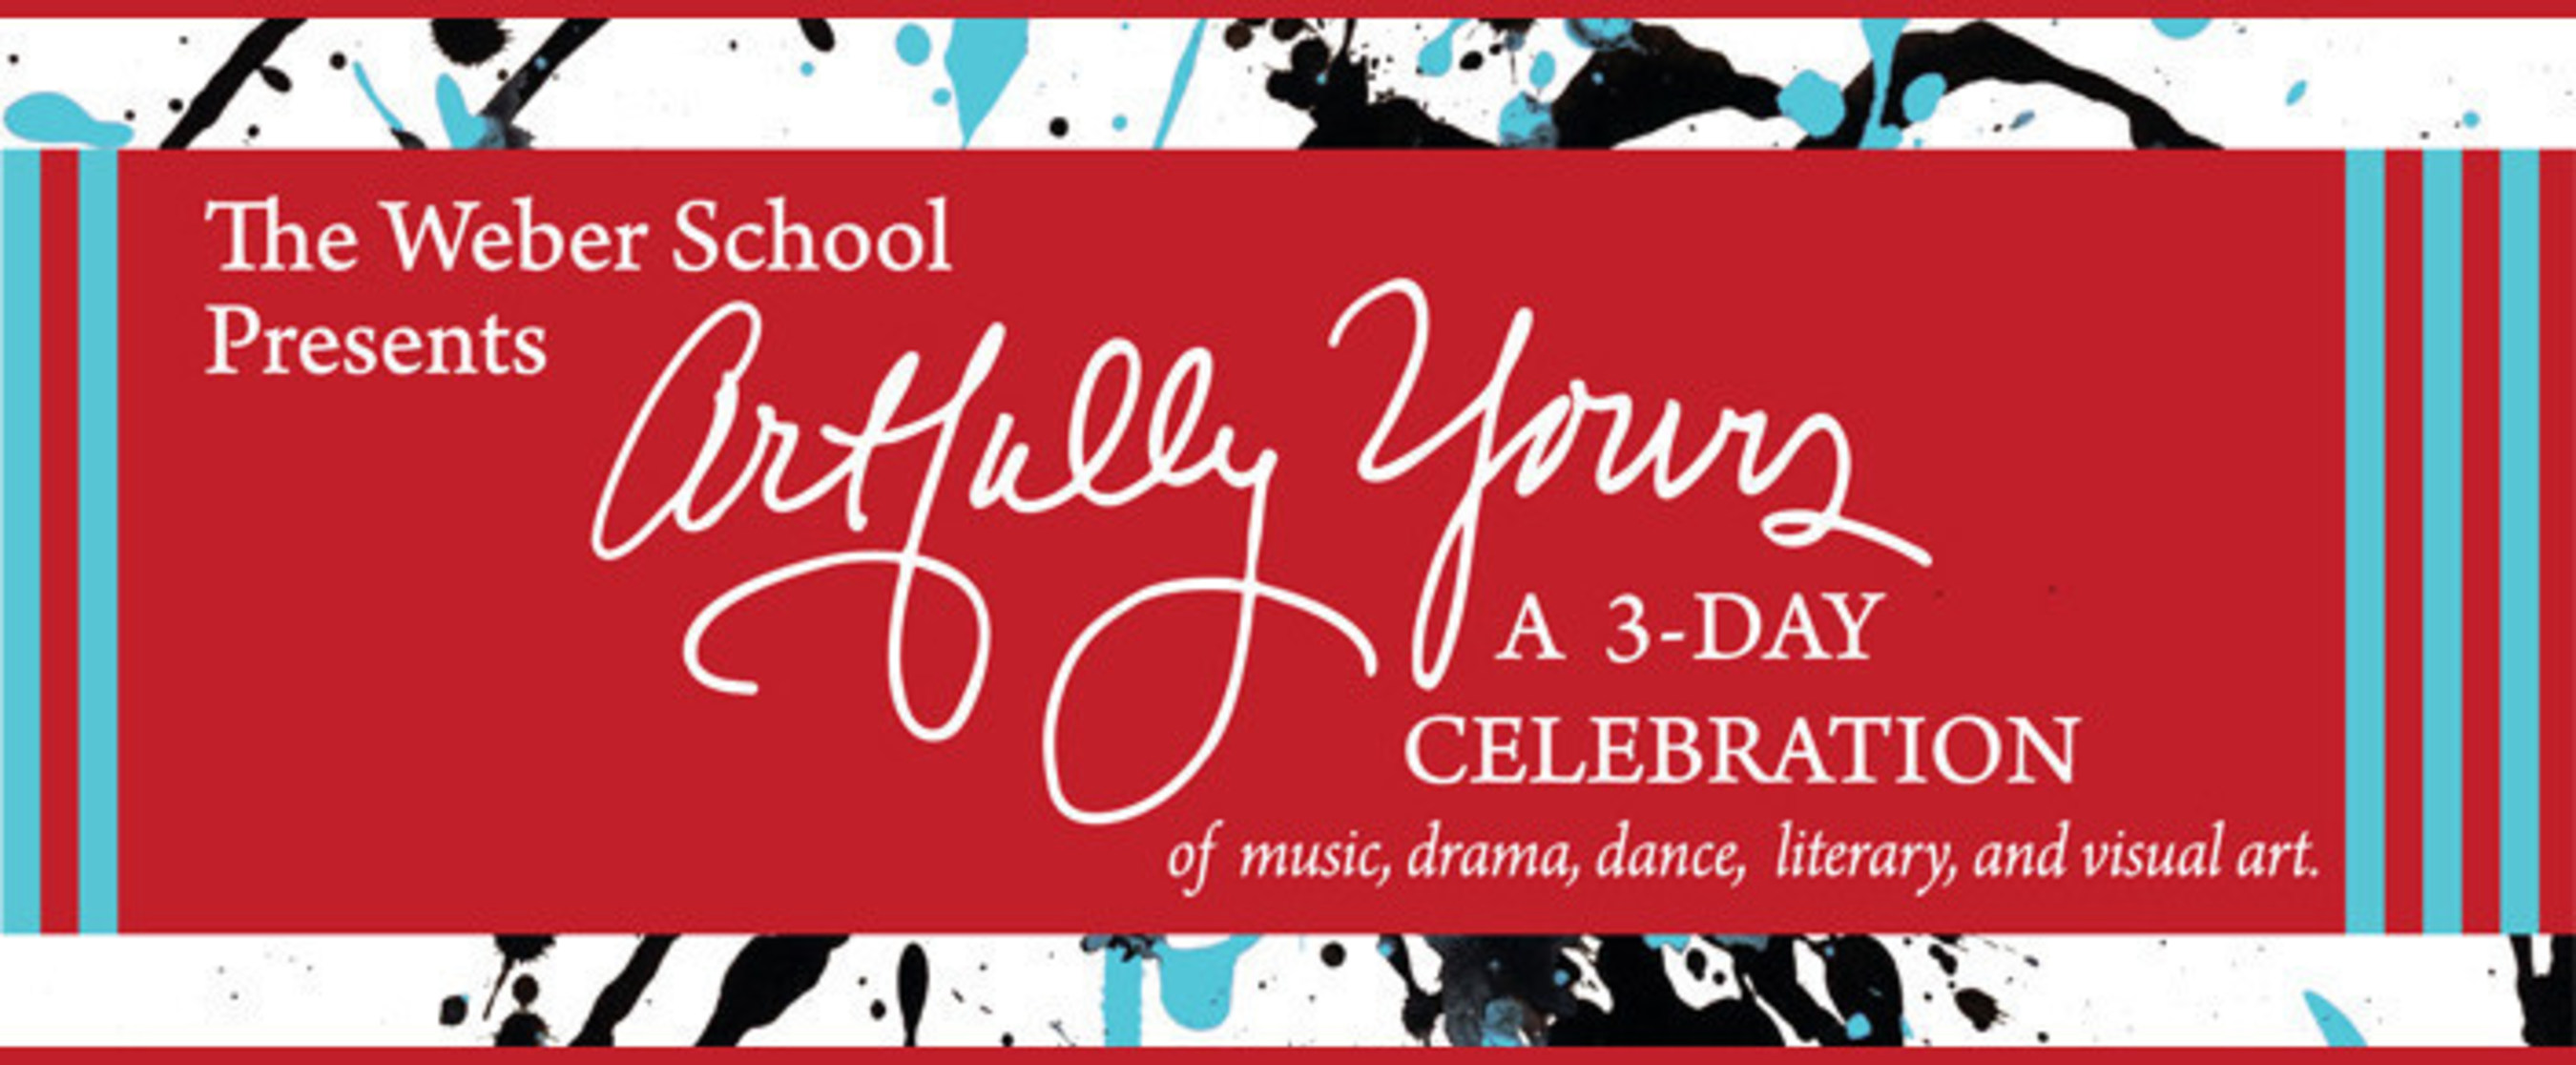 The Weber School Presents Artfully Yours